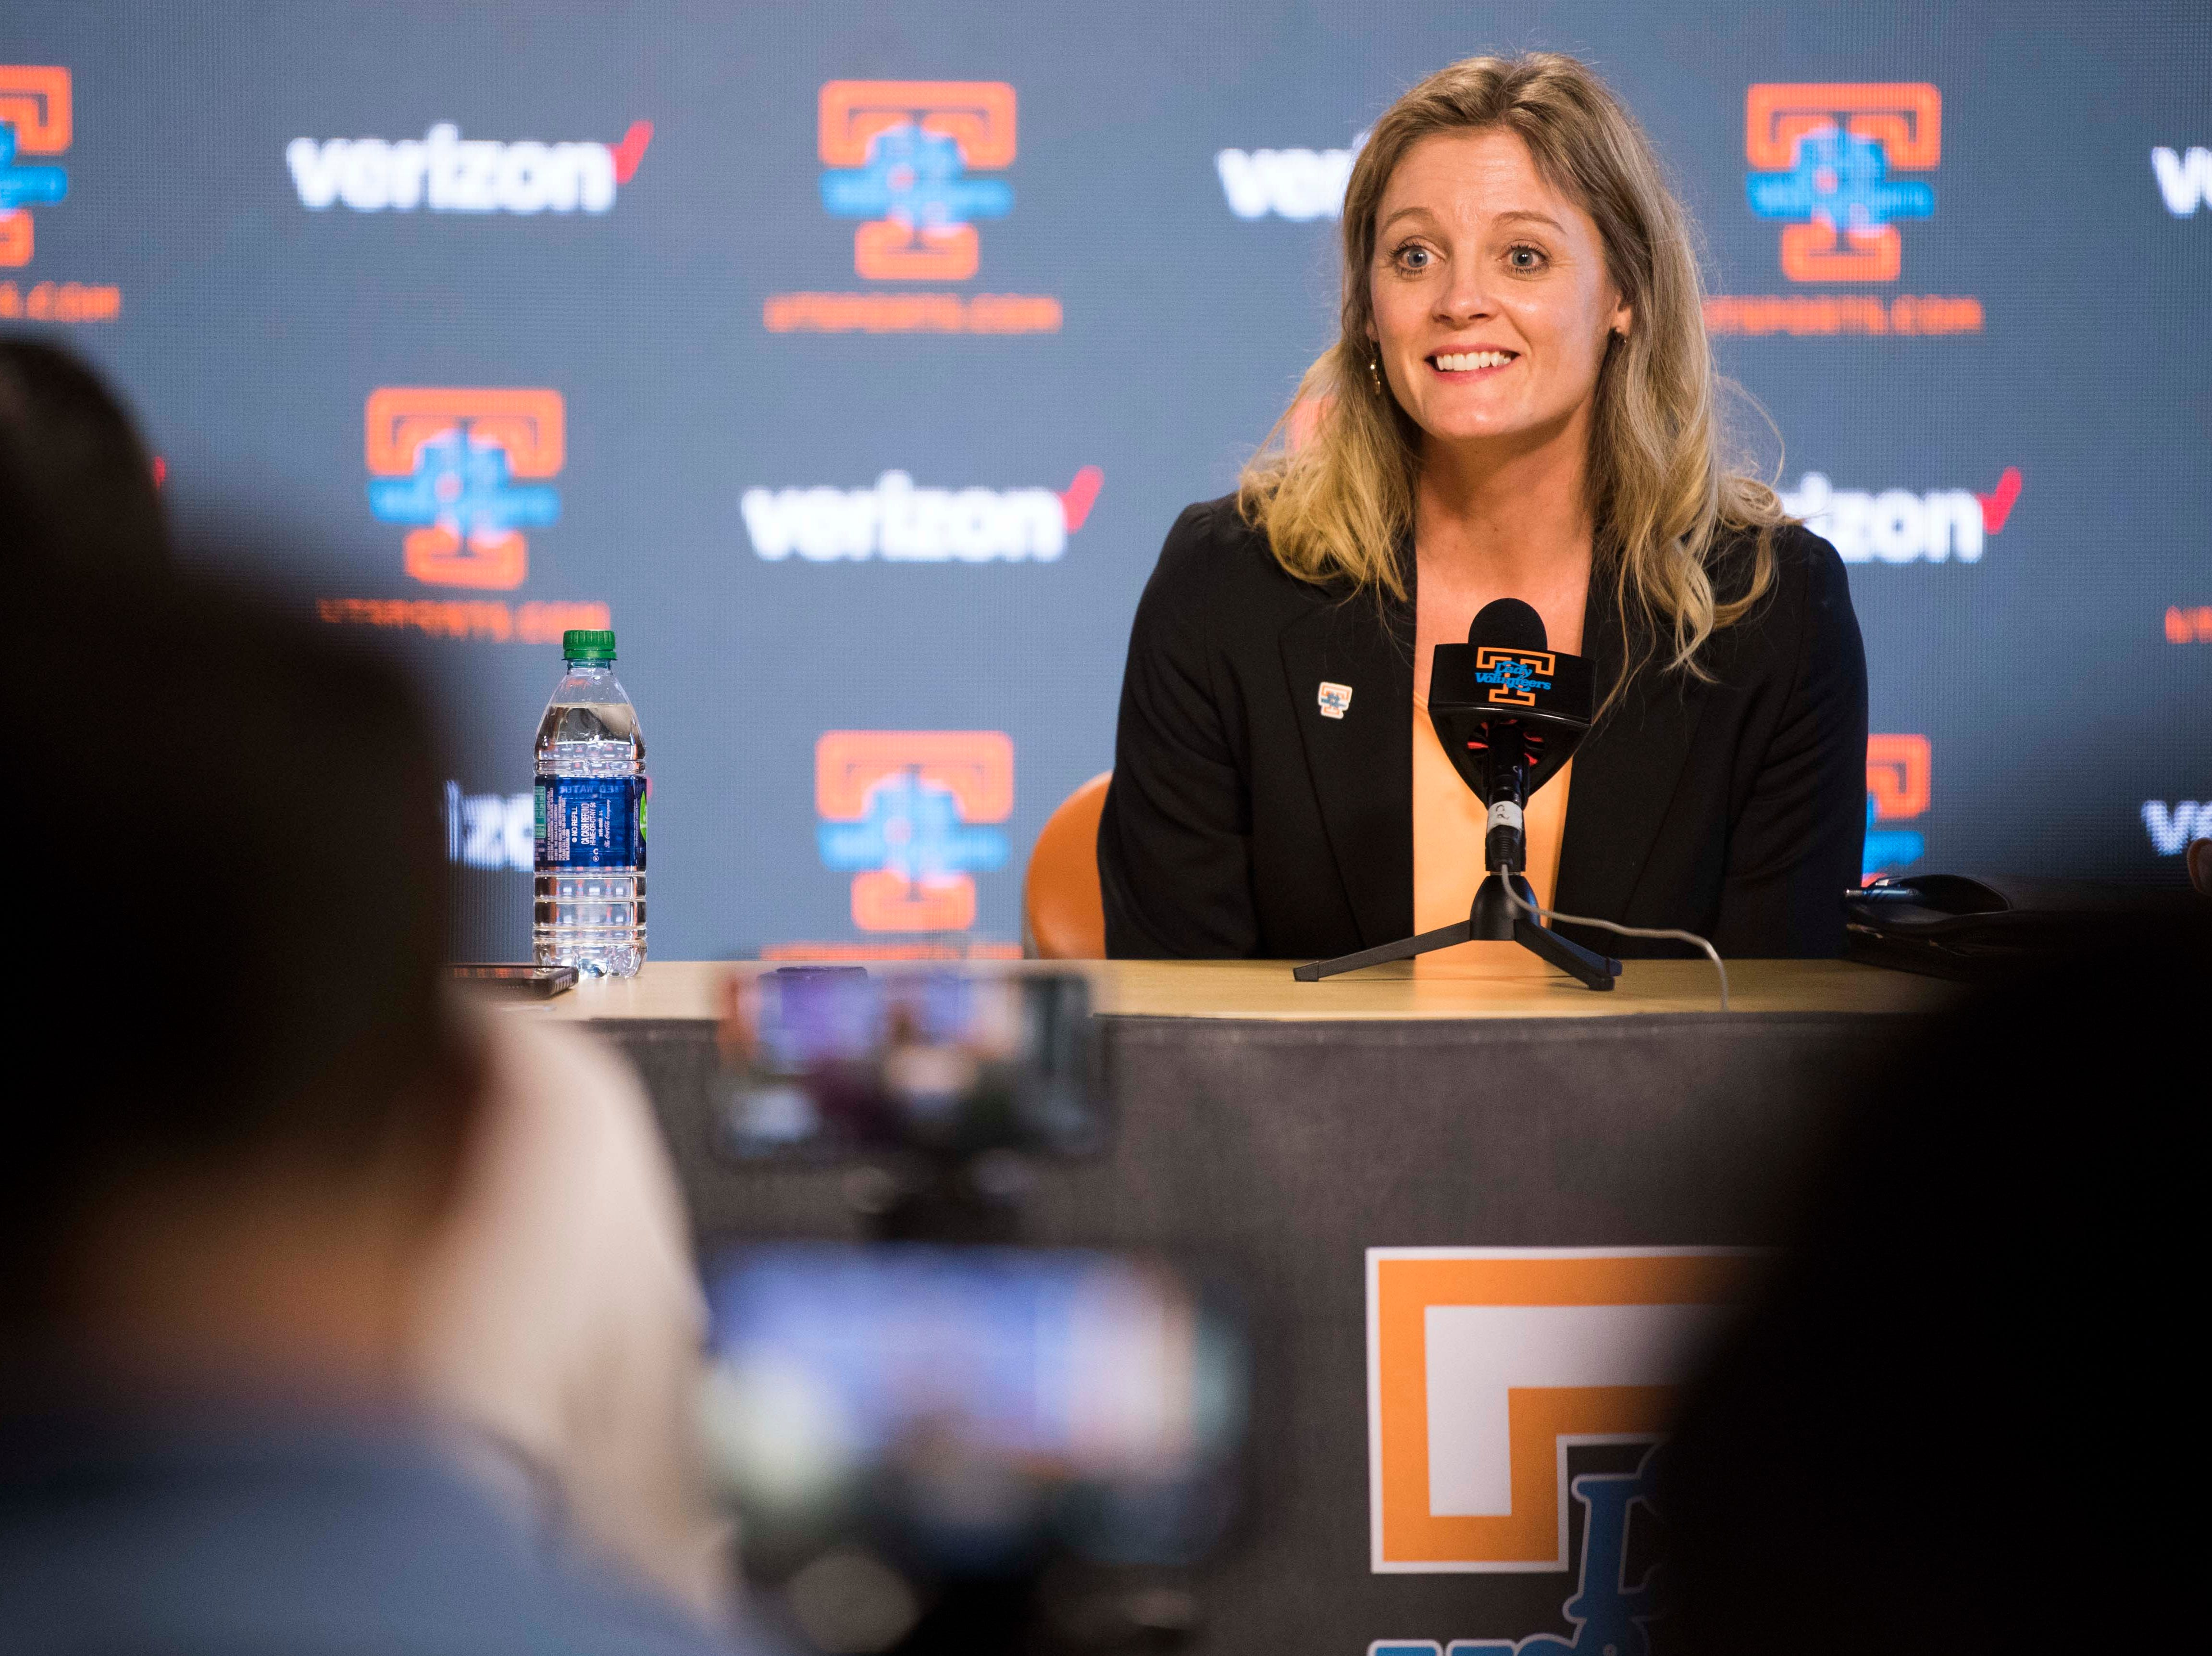 Kellie Harper speaks during a press conference announcing her as new head coach of the Lady Vols, in the Ray and Lucy Hand Studio on University of Tennessee's campus Wednesday, April 10, 2019.